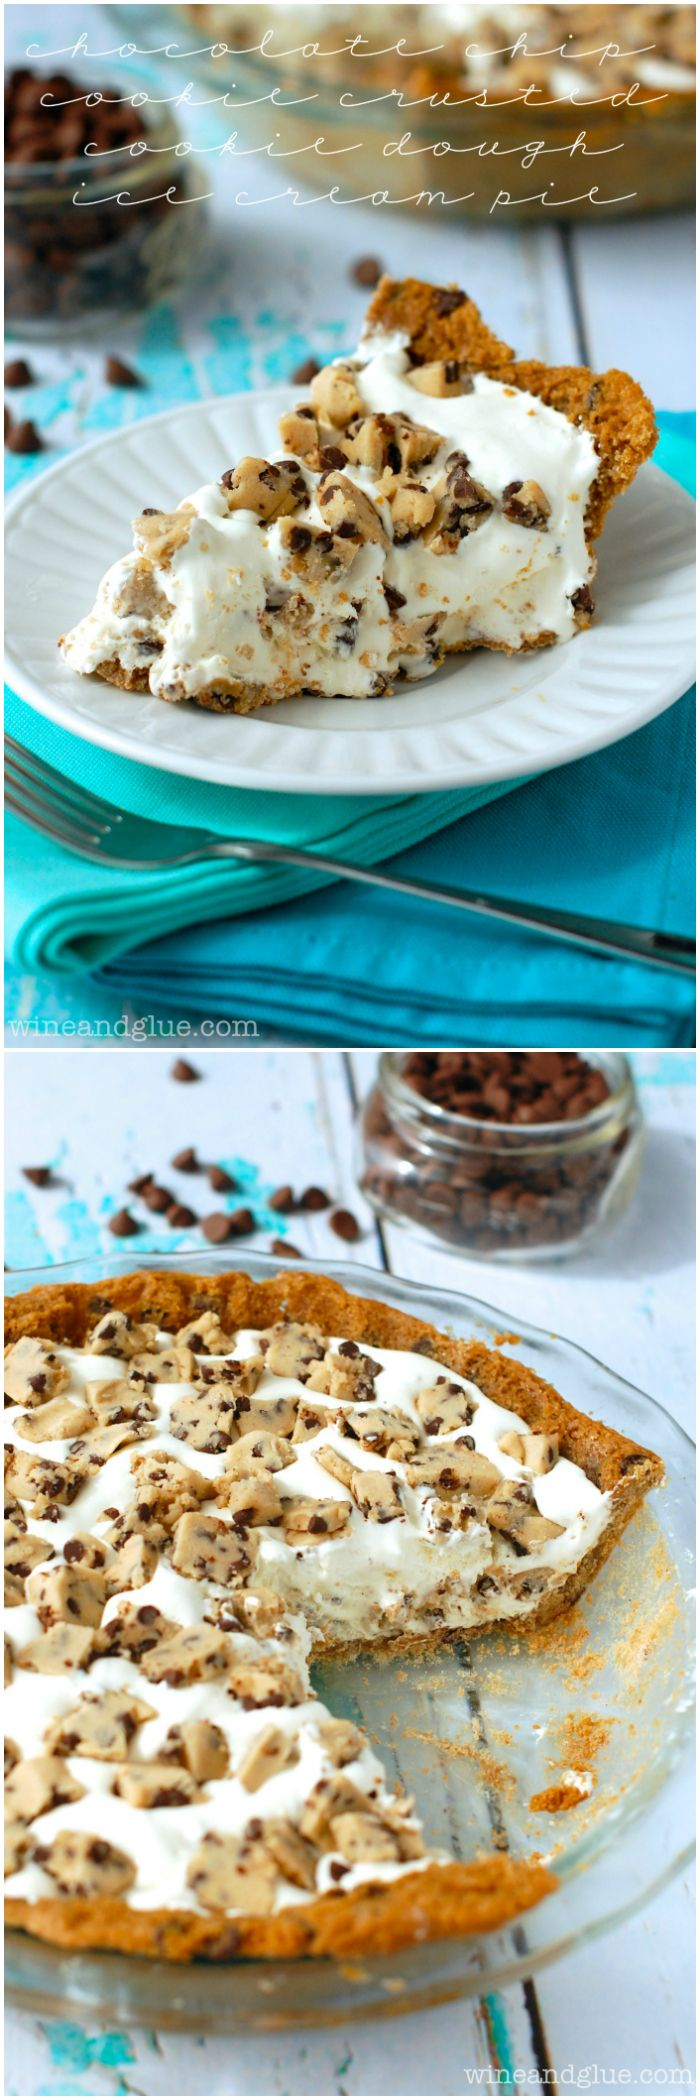 Chocolate Chip Cookie Crusted Cookie Dough Ice Cream Pie! | Cookie Dough Ice Cream filling! Chocolate Chip Cookie Crust!